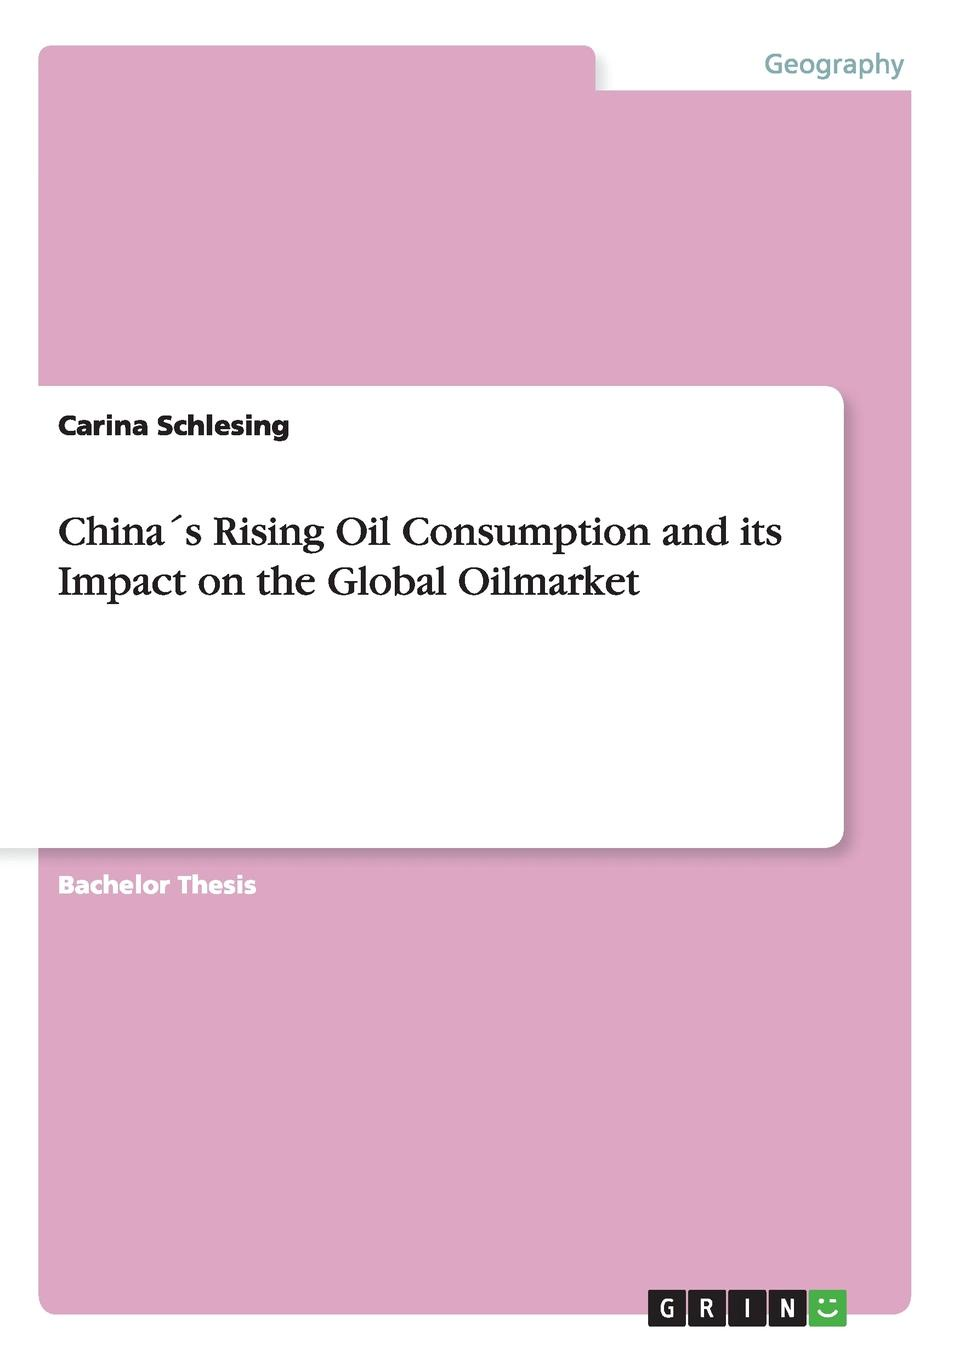 Carina Schlesing China.s Rising Oil Consumption and its Impact on the Global Oilmarket the impact of guanxi on industrial growth of china